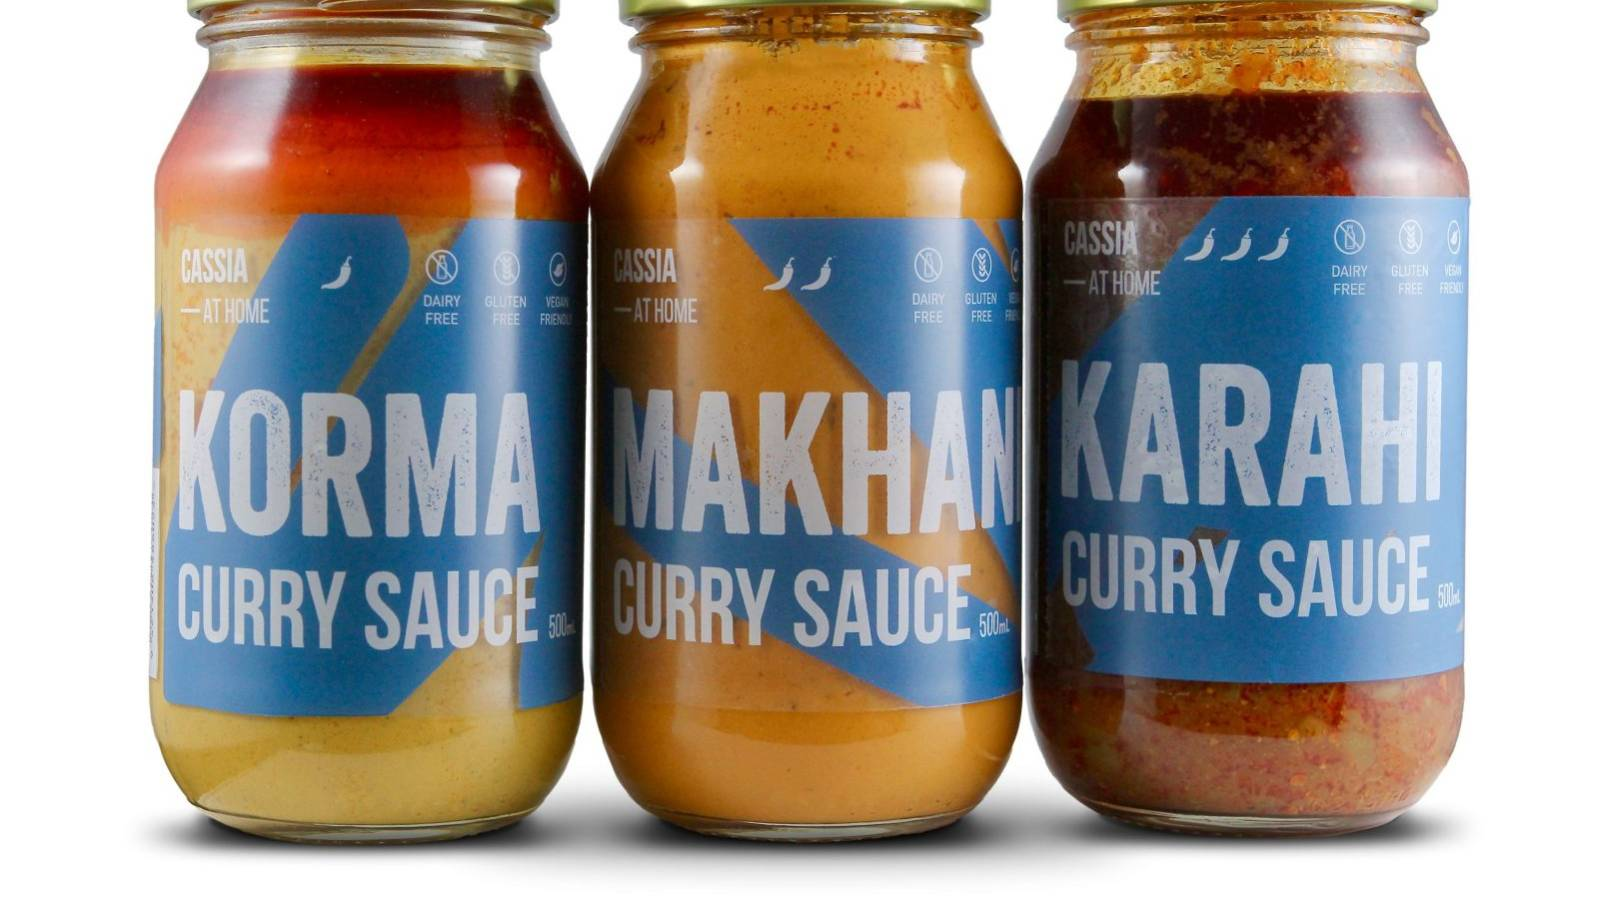 Lockdown lifesavers: Cassia curries at home